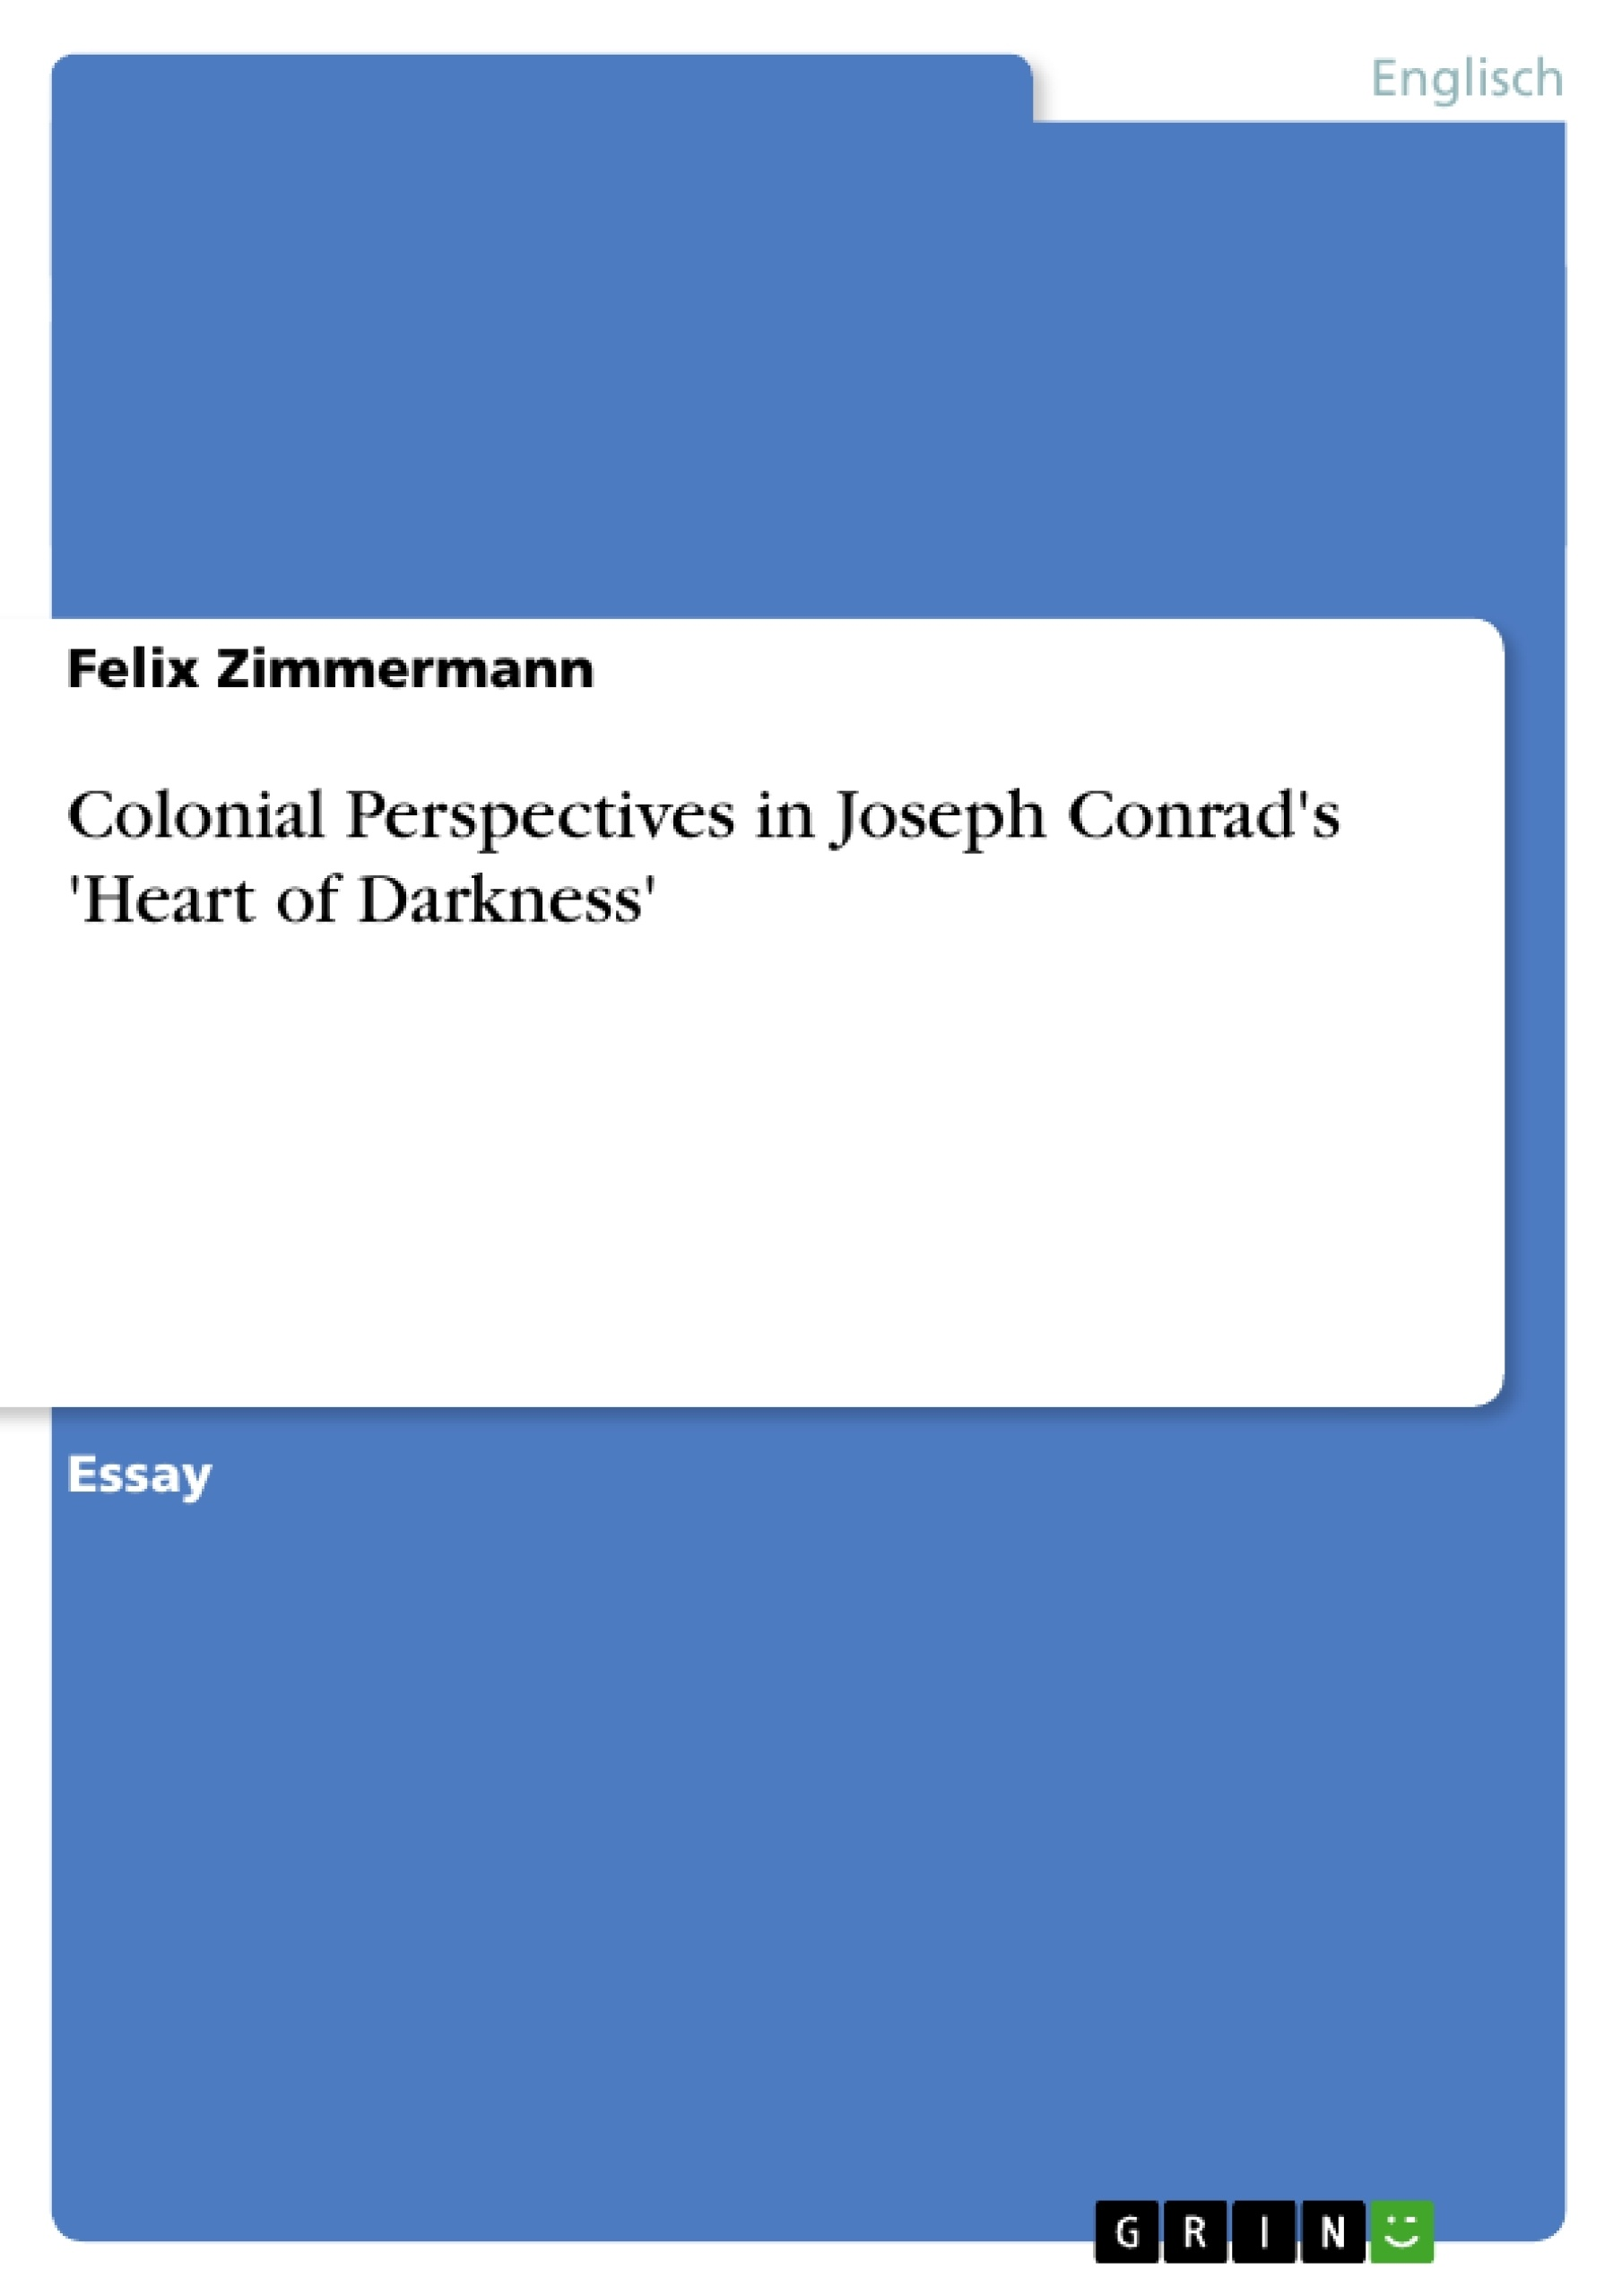 the perspectives of conrads heart of darkness english literature essay The horror: colonialism in joseph conrad's heart of darkness - free download as text file (txt), pdf file (pdf) or read online for free essay on the nature of colonialism as seen in conrad's heart of darkness.